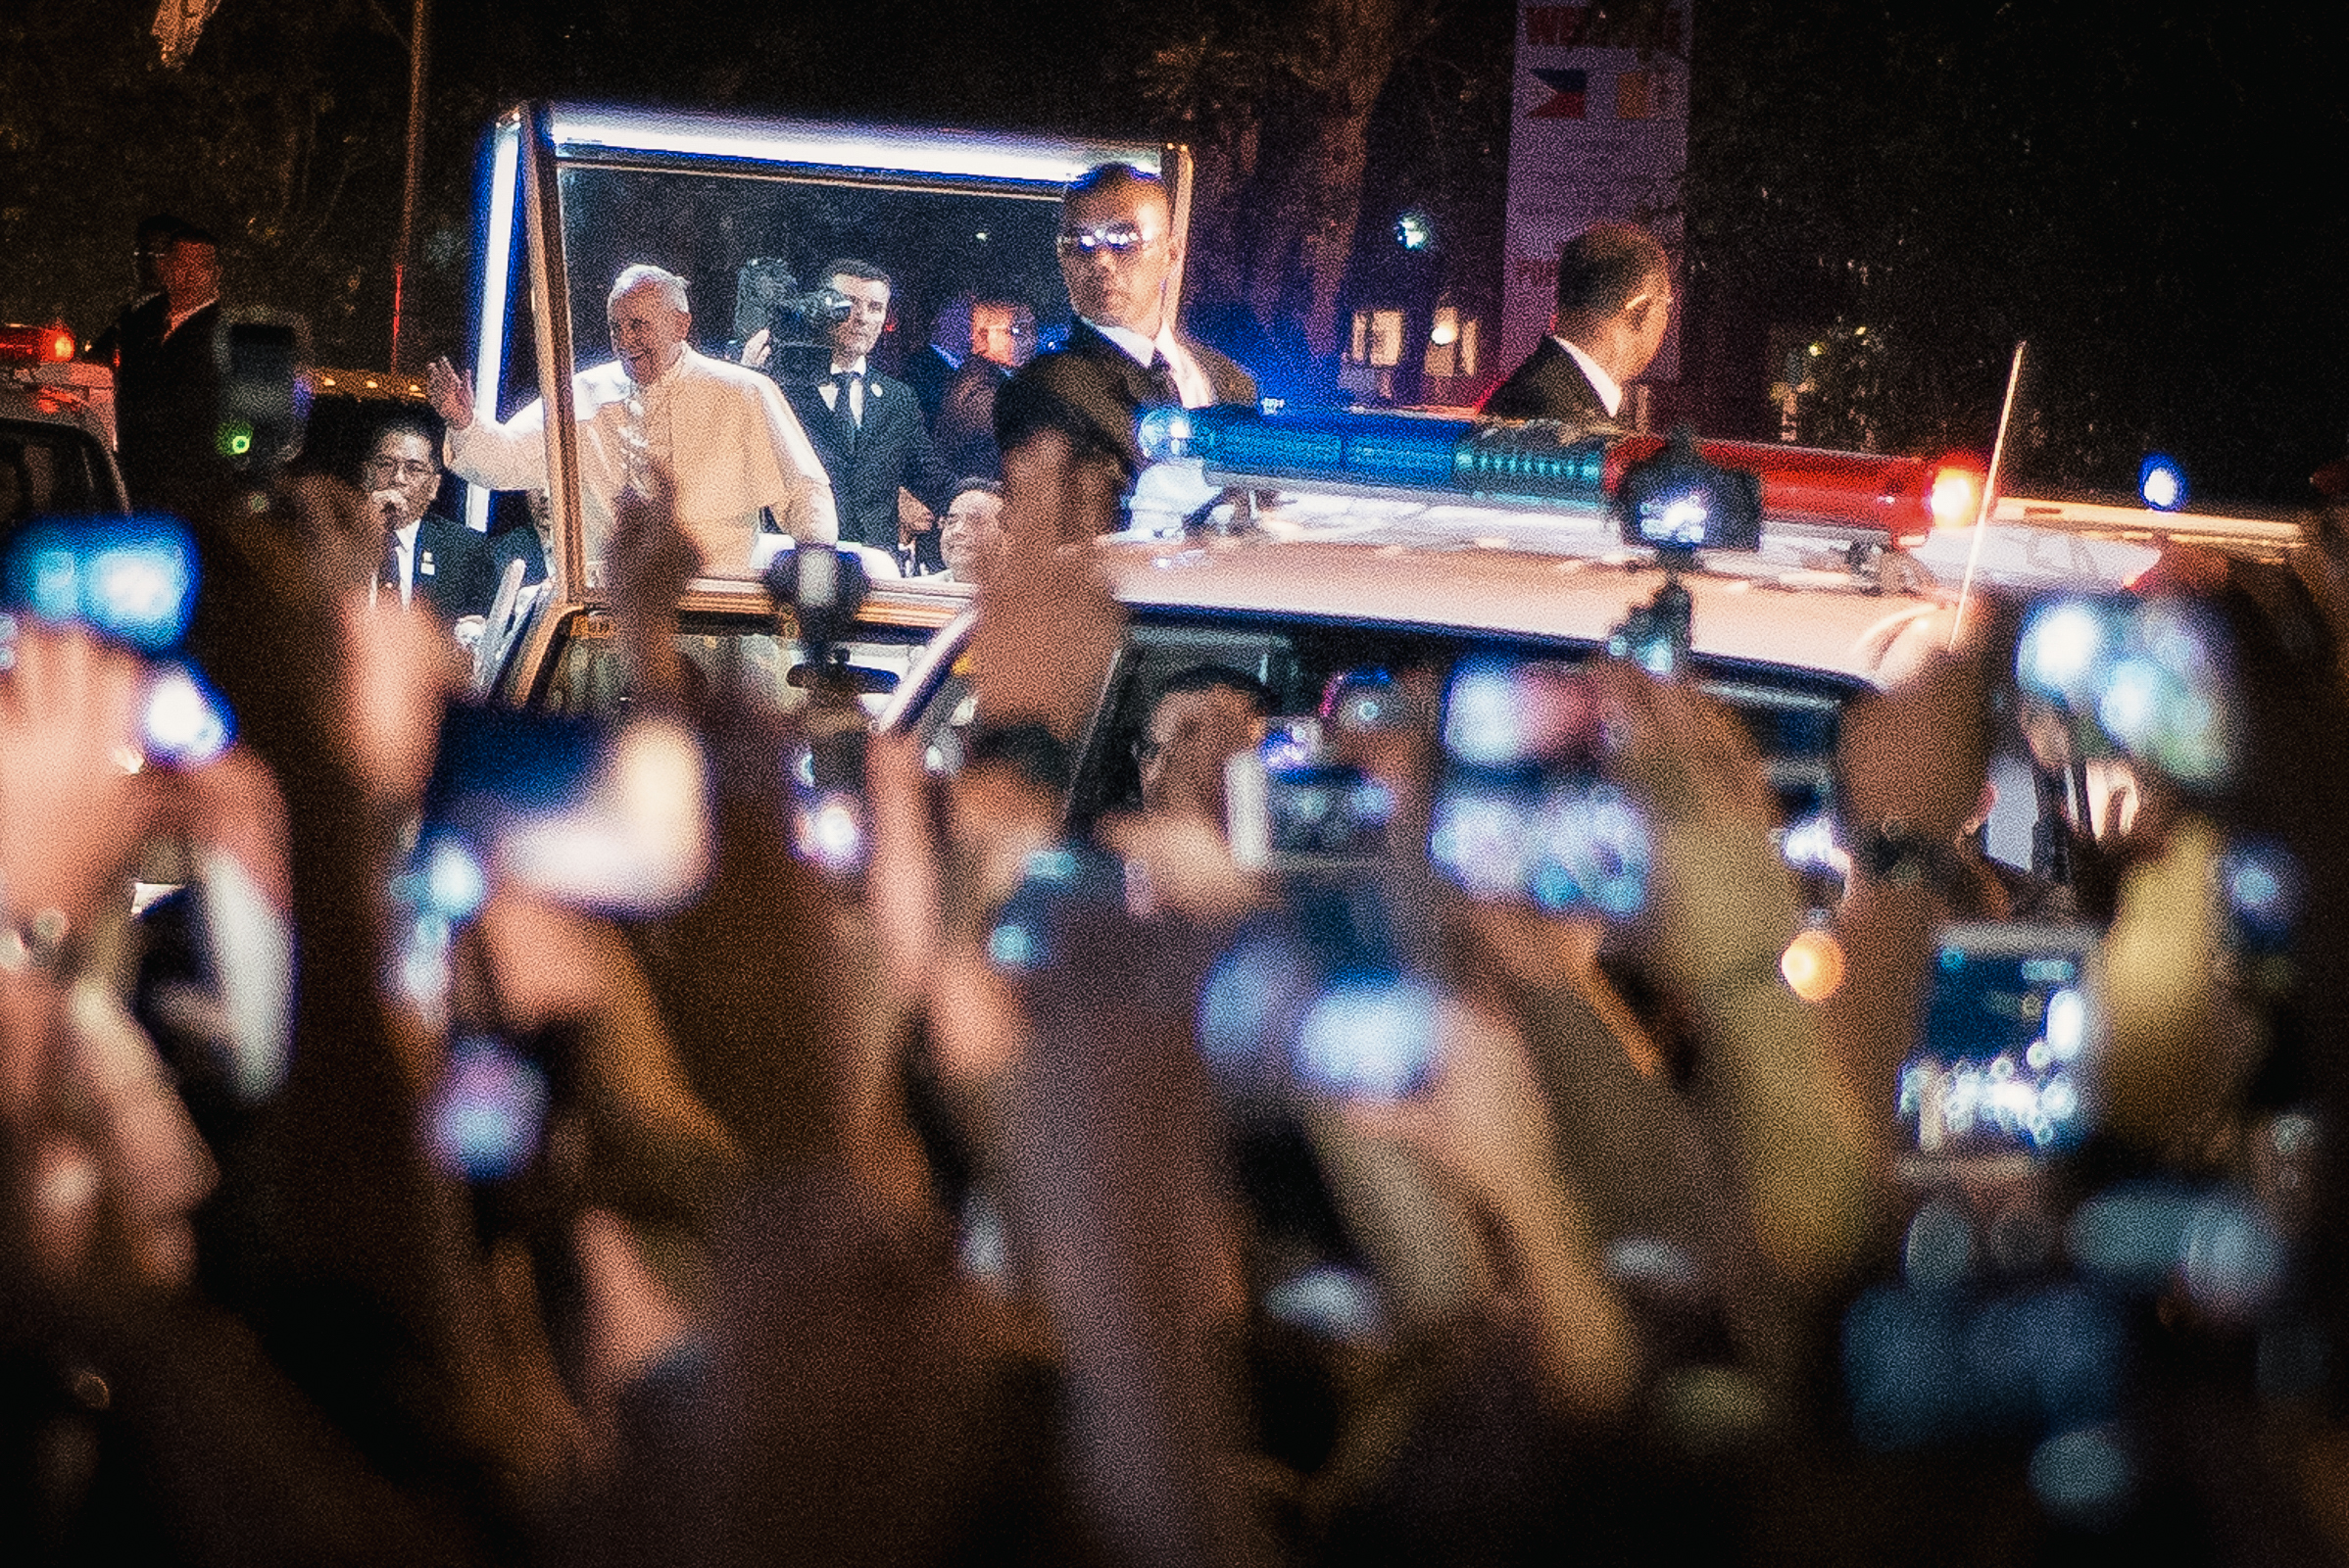 Filipino faithfultakepictures of Pope Francis on board hismobilealongRoxas Boulevard on the night of his arrival on January 15, 2015.  Filipino faithfultakepictures of Pope Francis on board hismobilealongRoxas Boulevard on the night of his arrival on January 15, 2015.